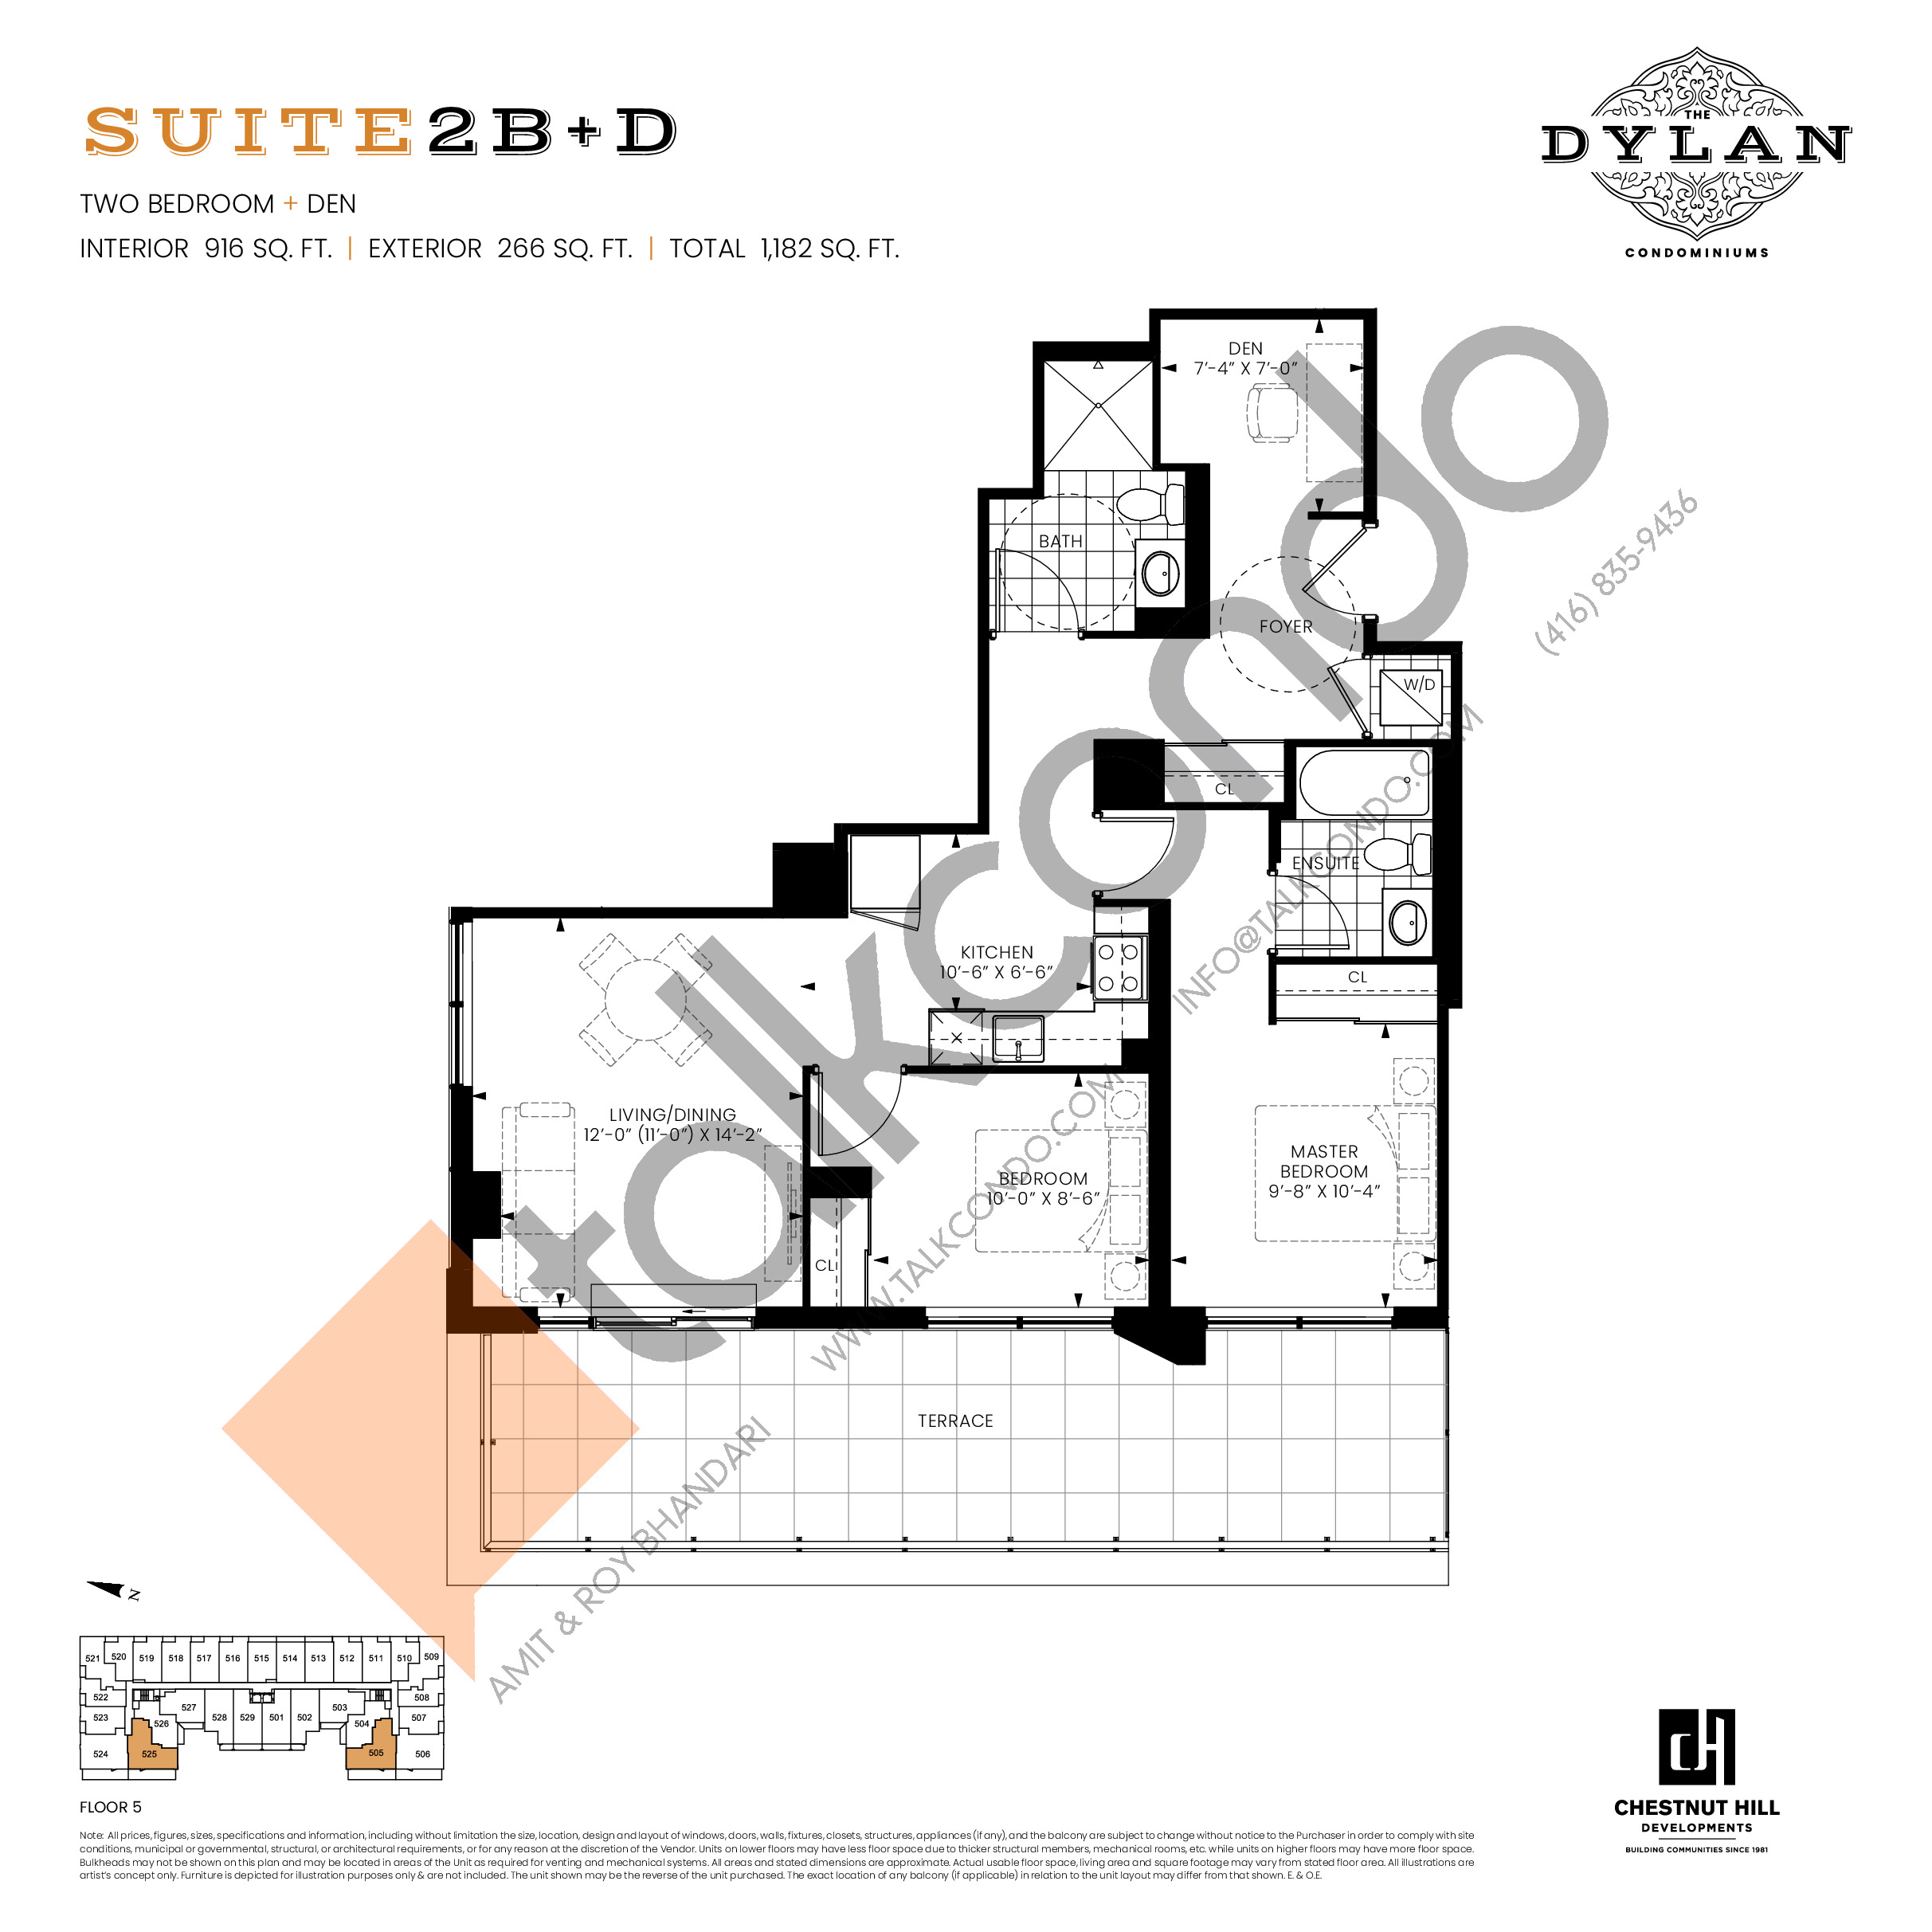 Suite 2B+D Floor Plan at The Dylan Condos - 916 sq.ft